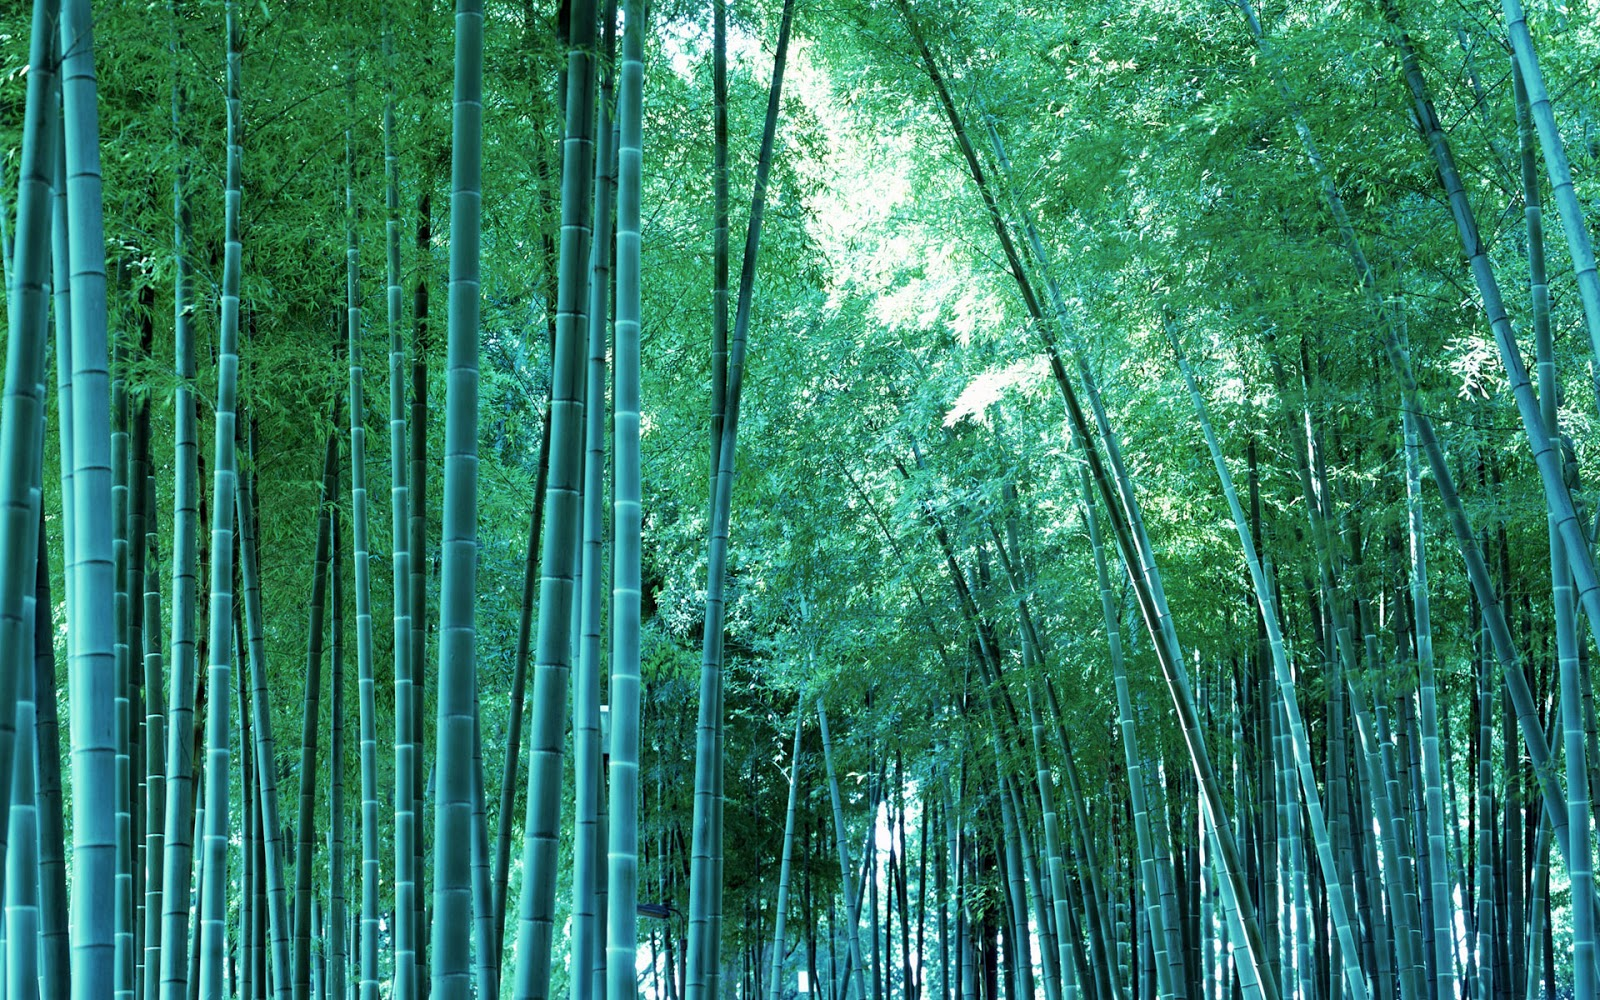 Hd wallpapers bamboo tree wallpapers hd for Bamboo wallpaper